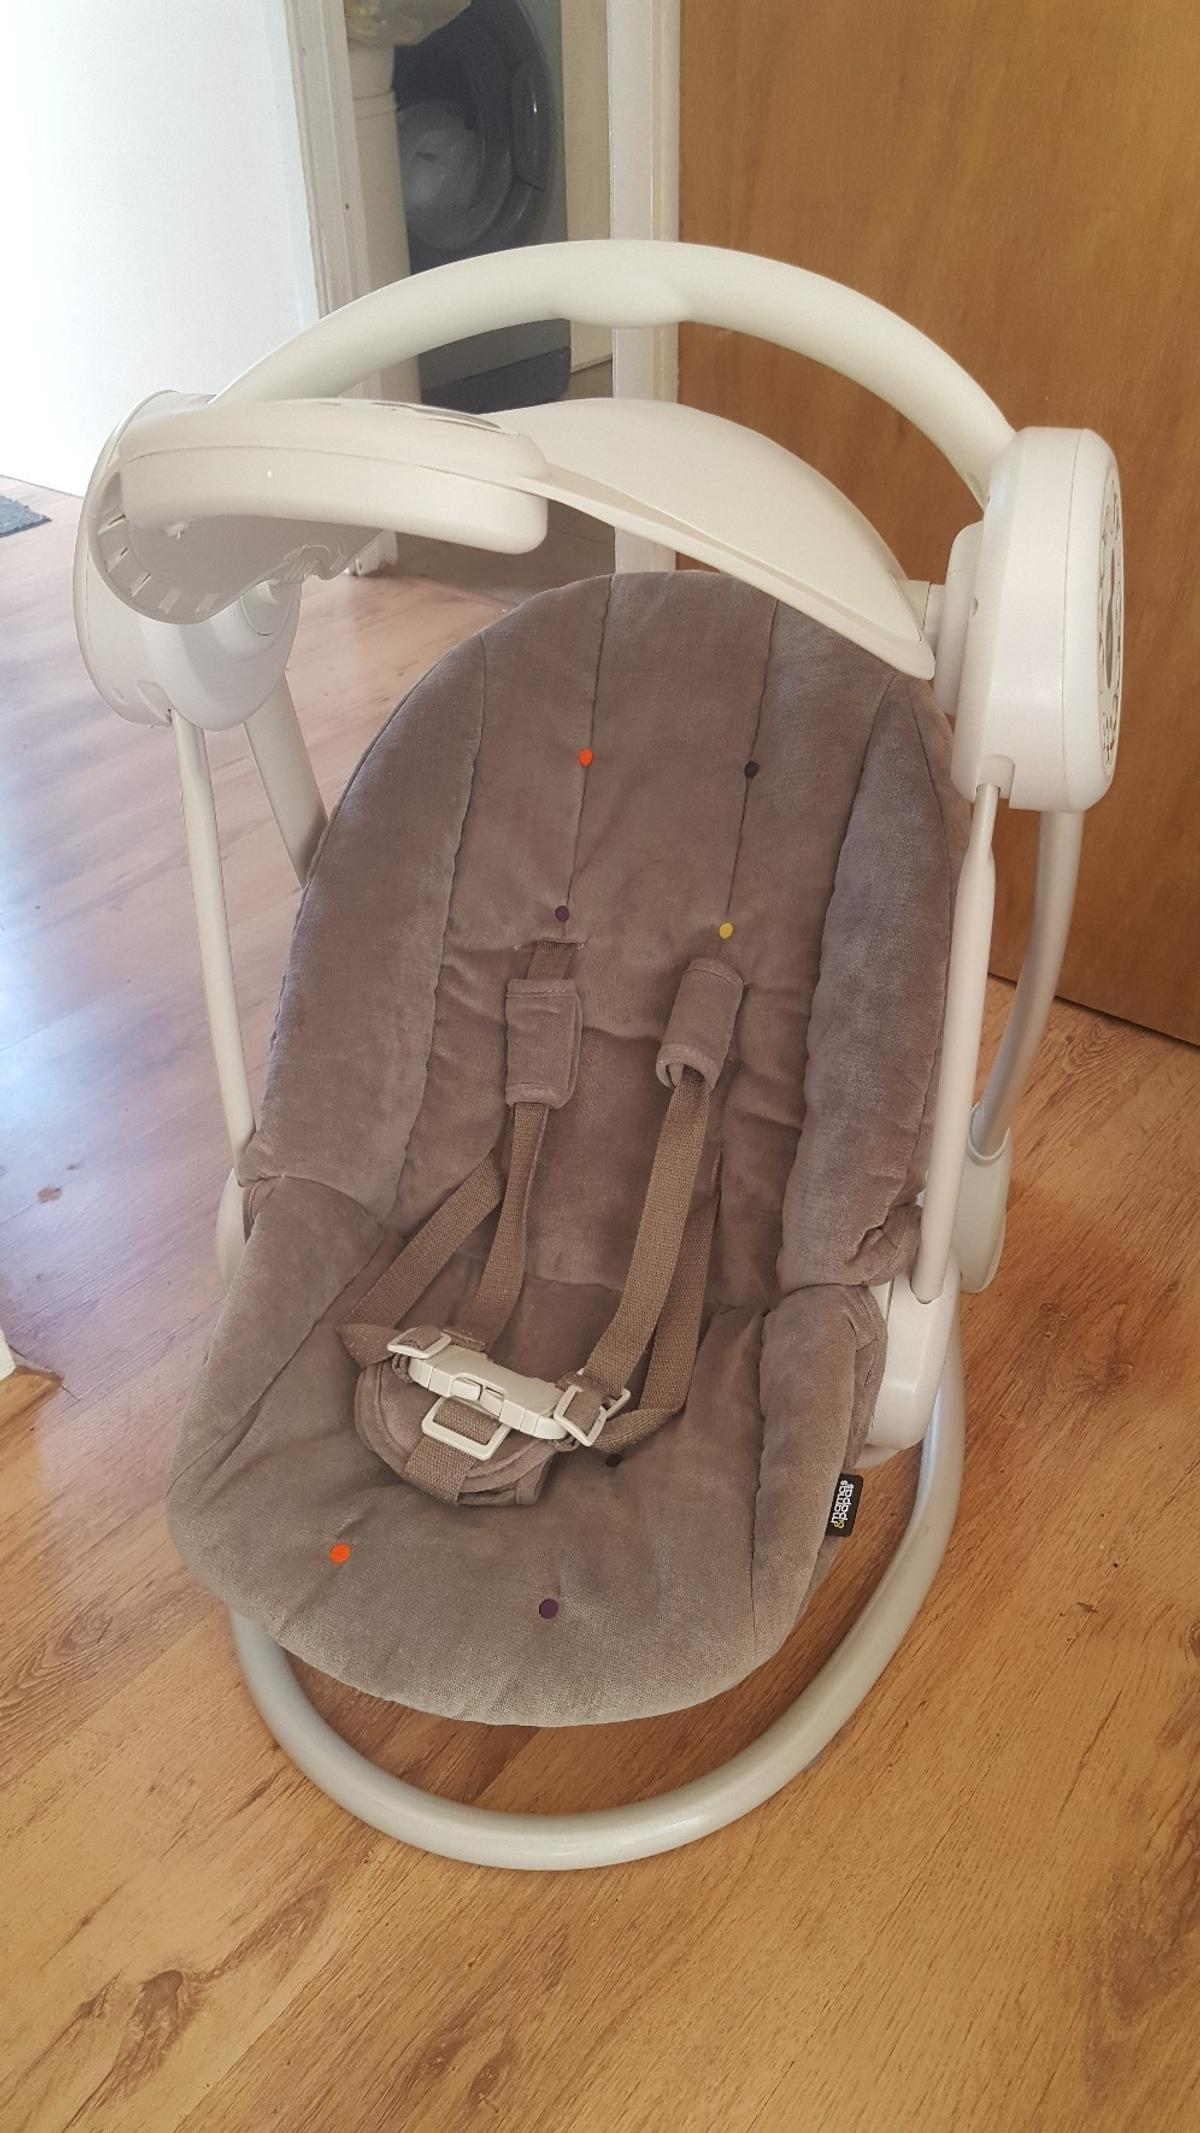 Mamas & Papas Starlite Swing in EC1V Islington for £30 00 for sale